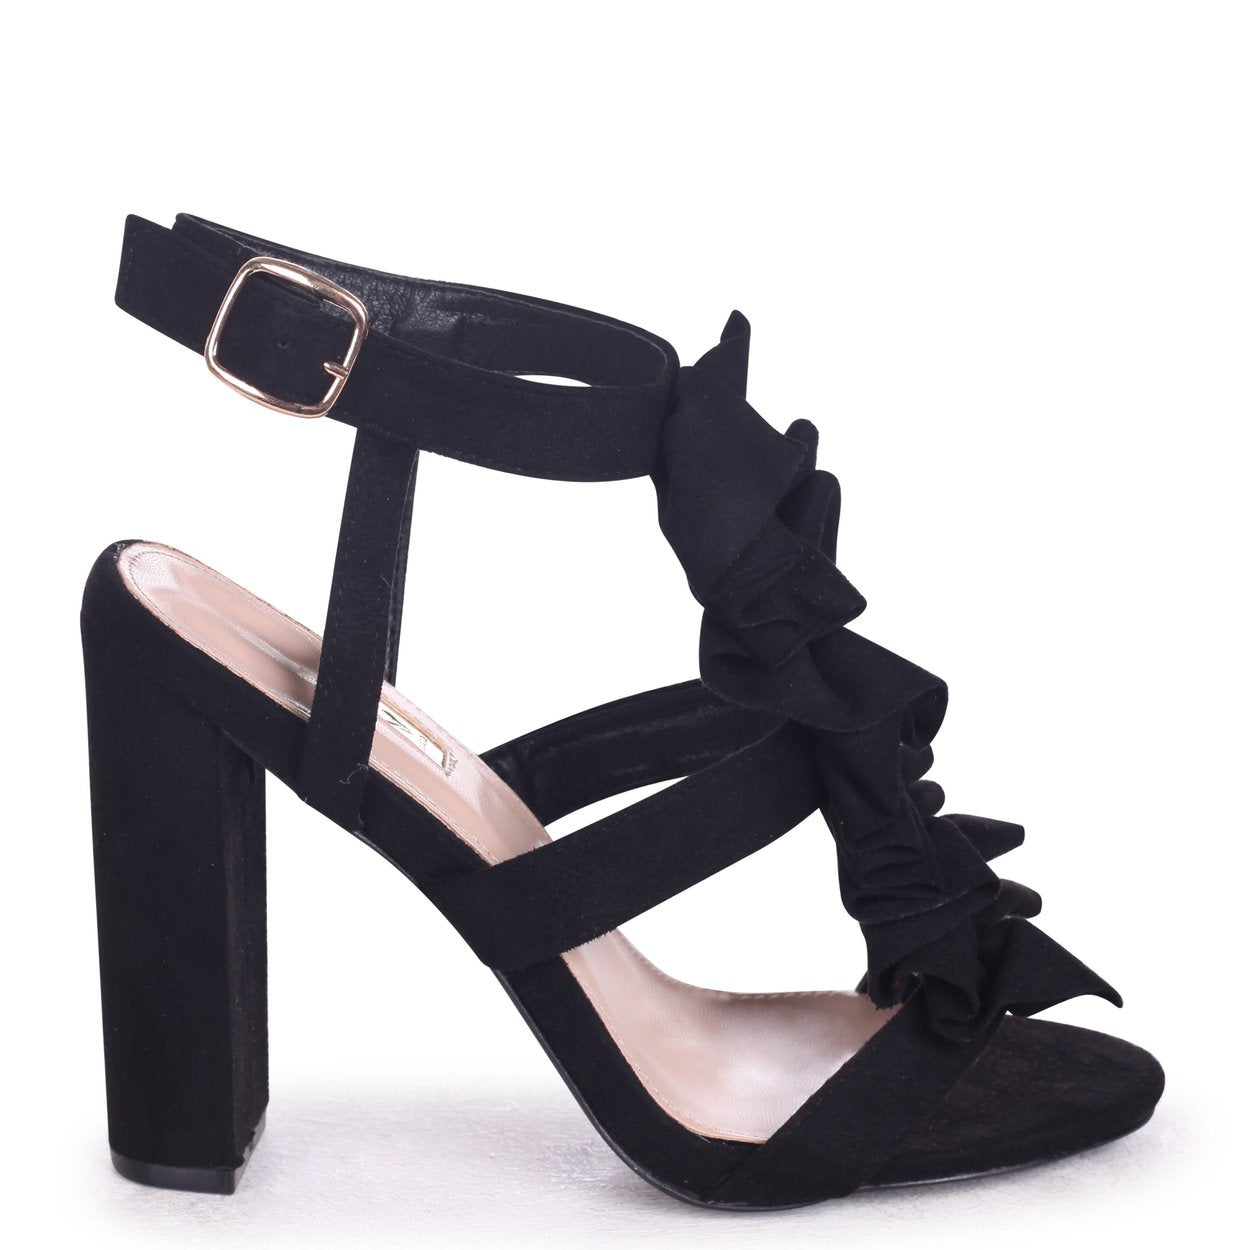 SHANELL - Black Suede Block Heel With Ruffle Front Design